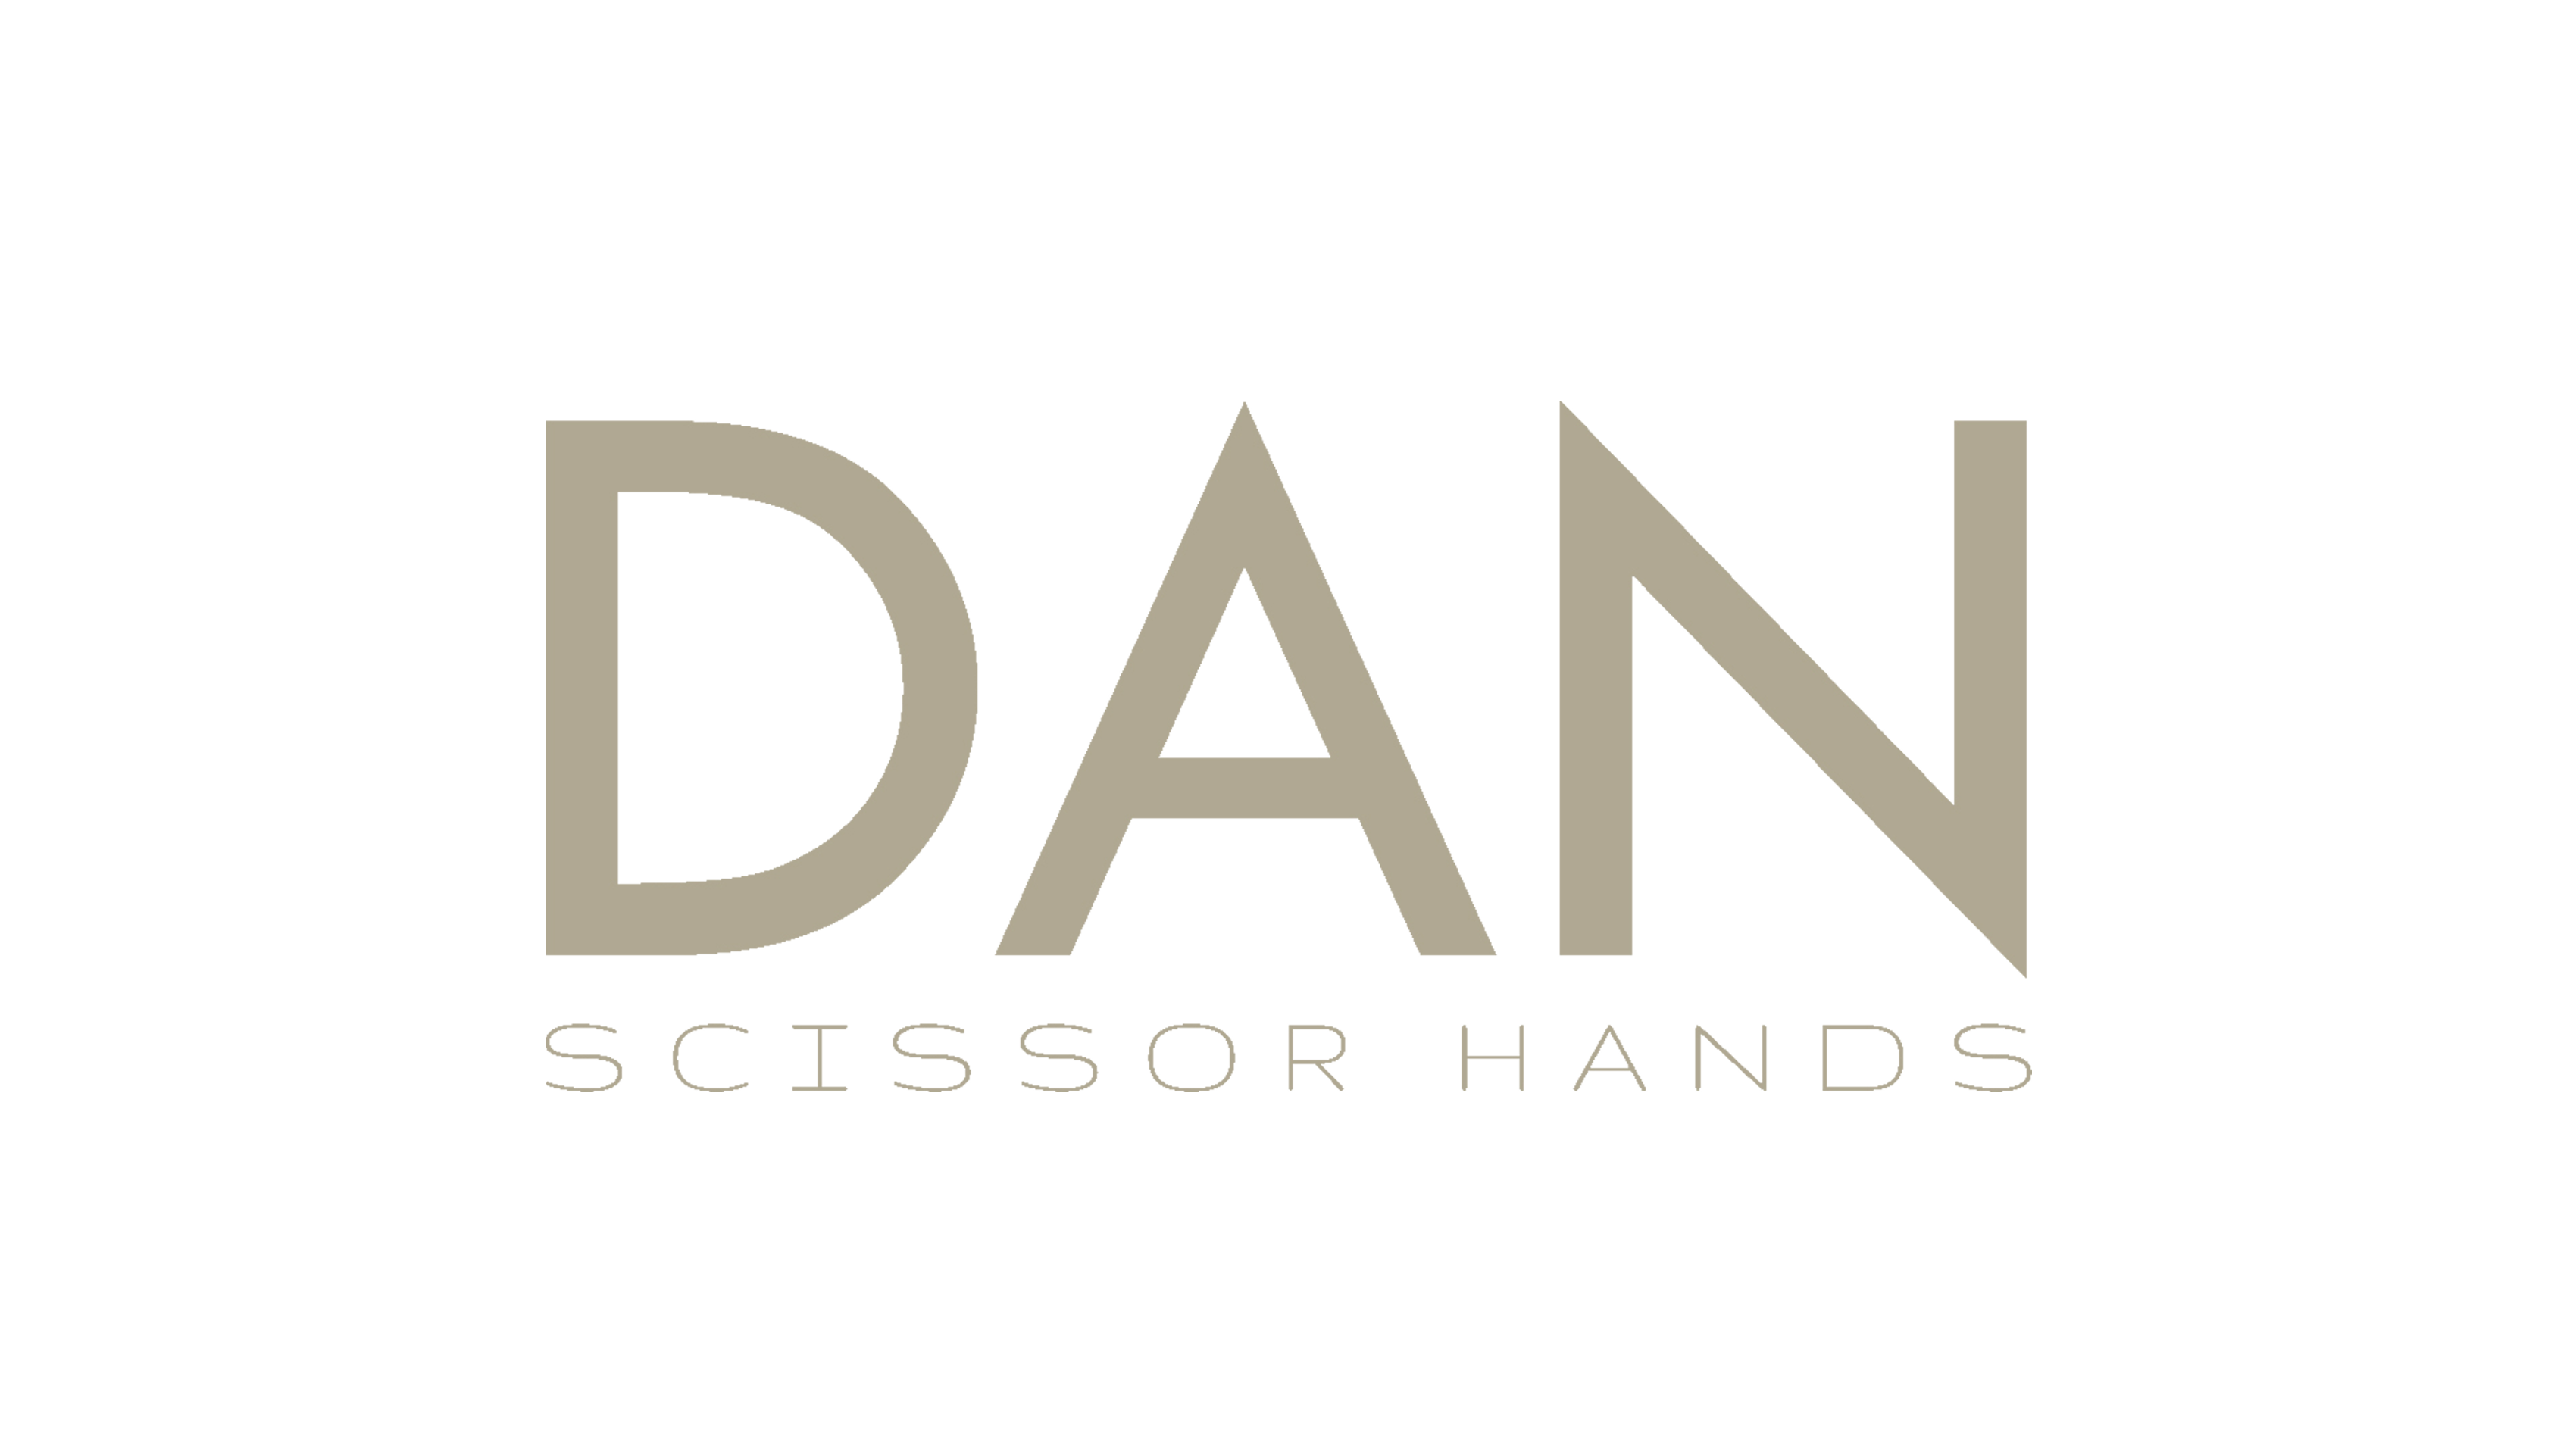 logo says dan scissor hands